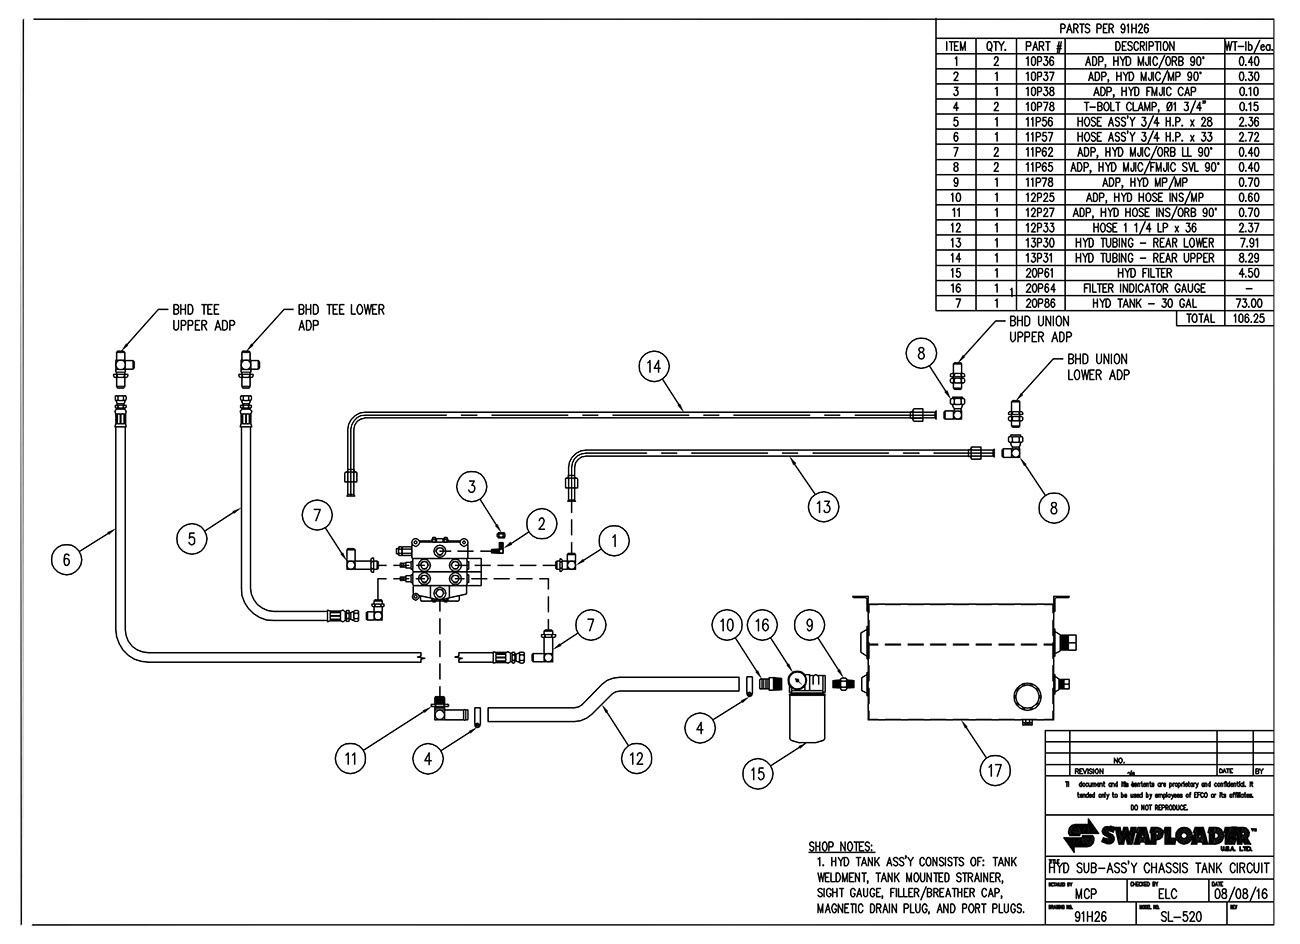 SL-520 Hydraulic Sub-Assembly Chassis Tank Circuit Diagram